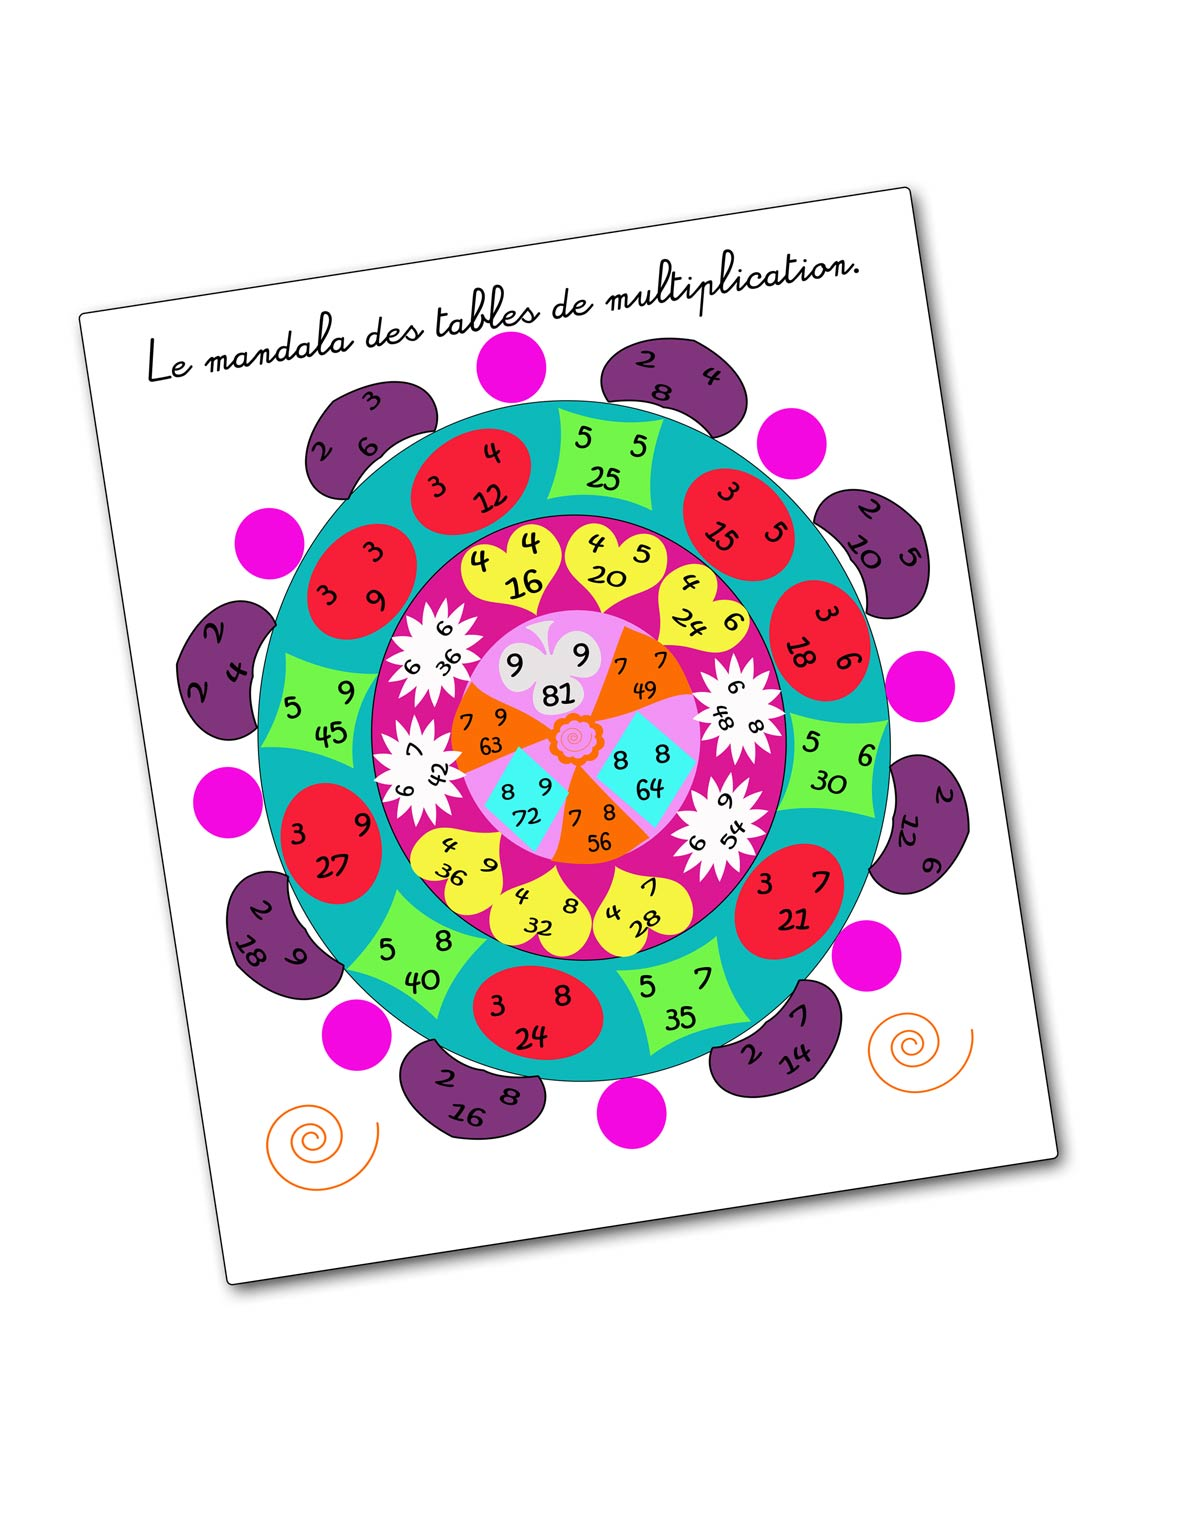 Mandala des tables de multiplication un monde meilleur for Table de multiplication de 5